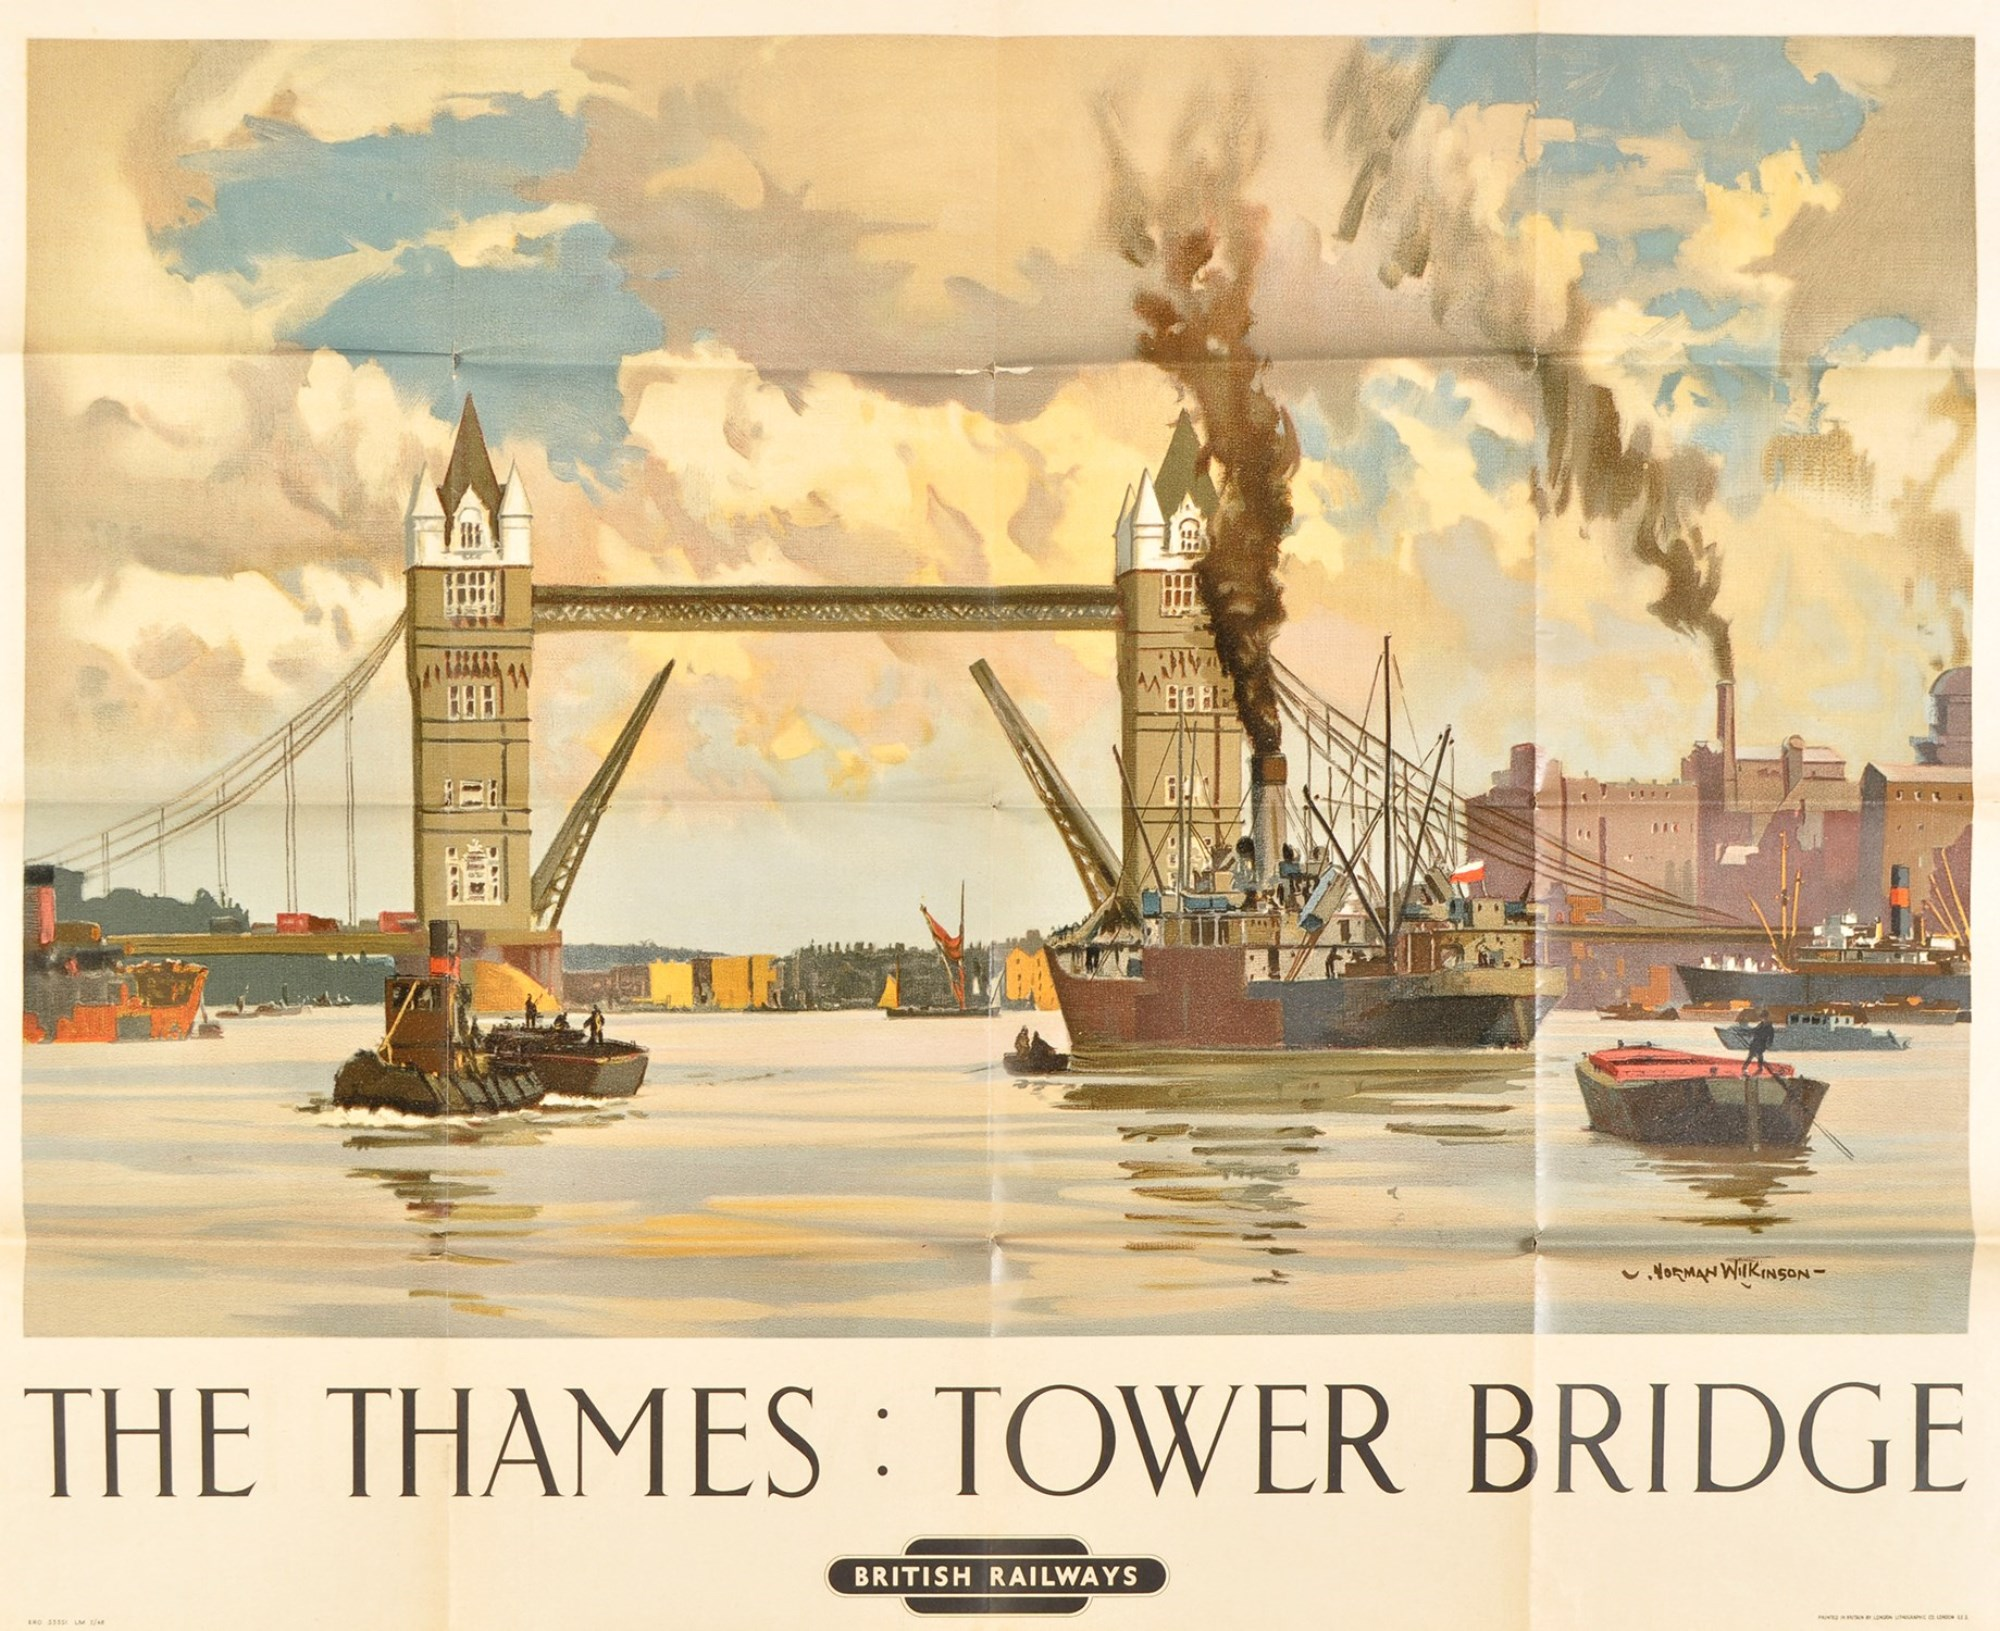 A double size British Railway poster for 'Thames: Tower Bridge', by Norman Wilkinson